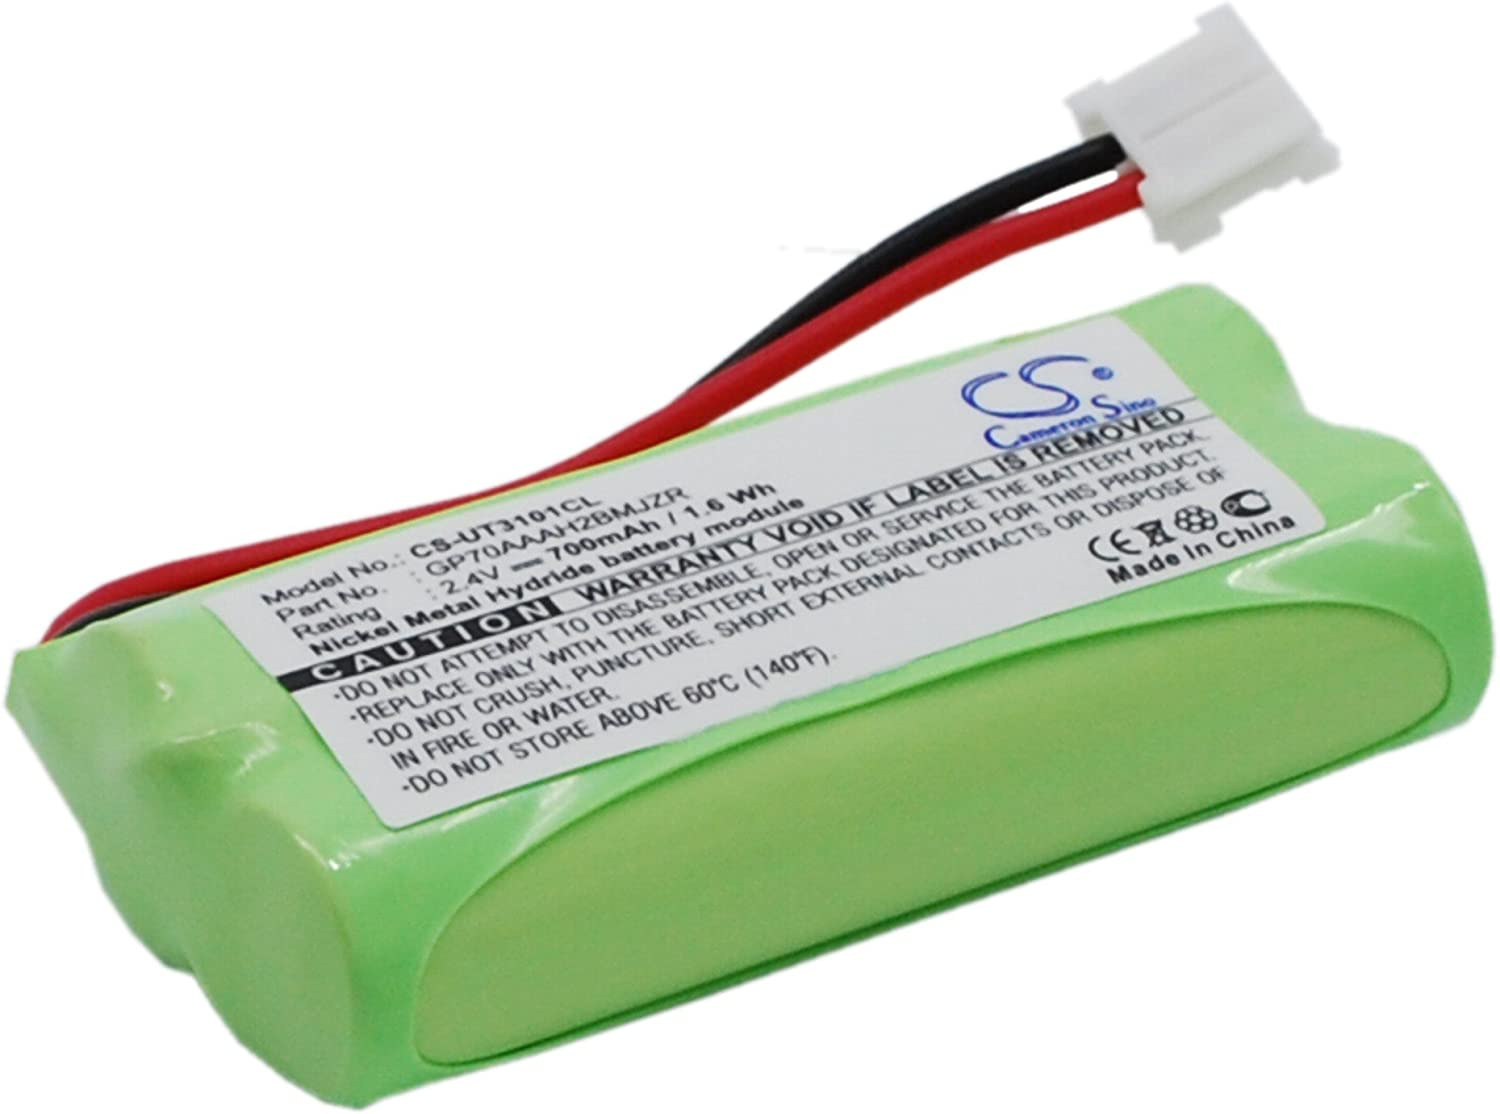 Cameron Sino Rechargeble Battery for GE 28127FE2